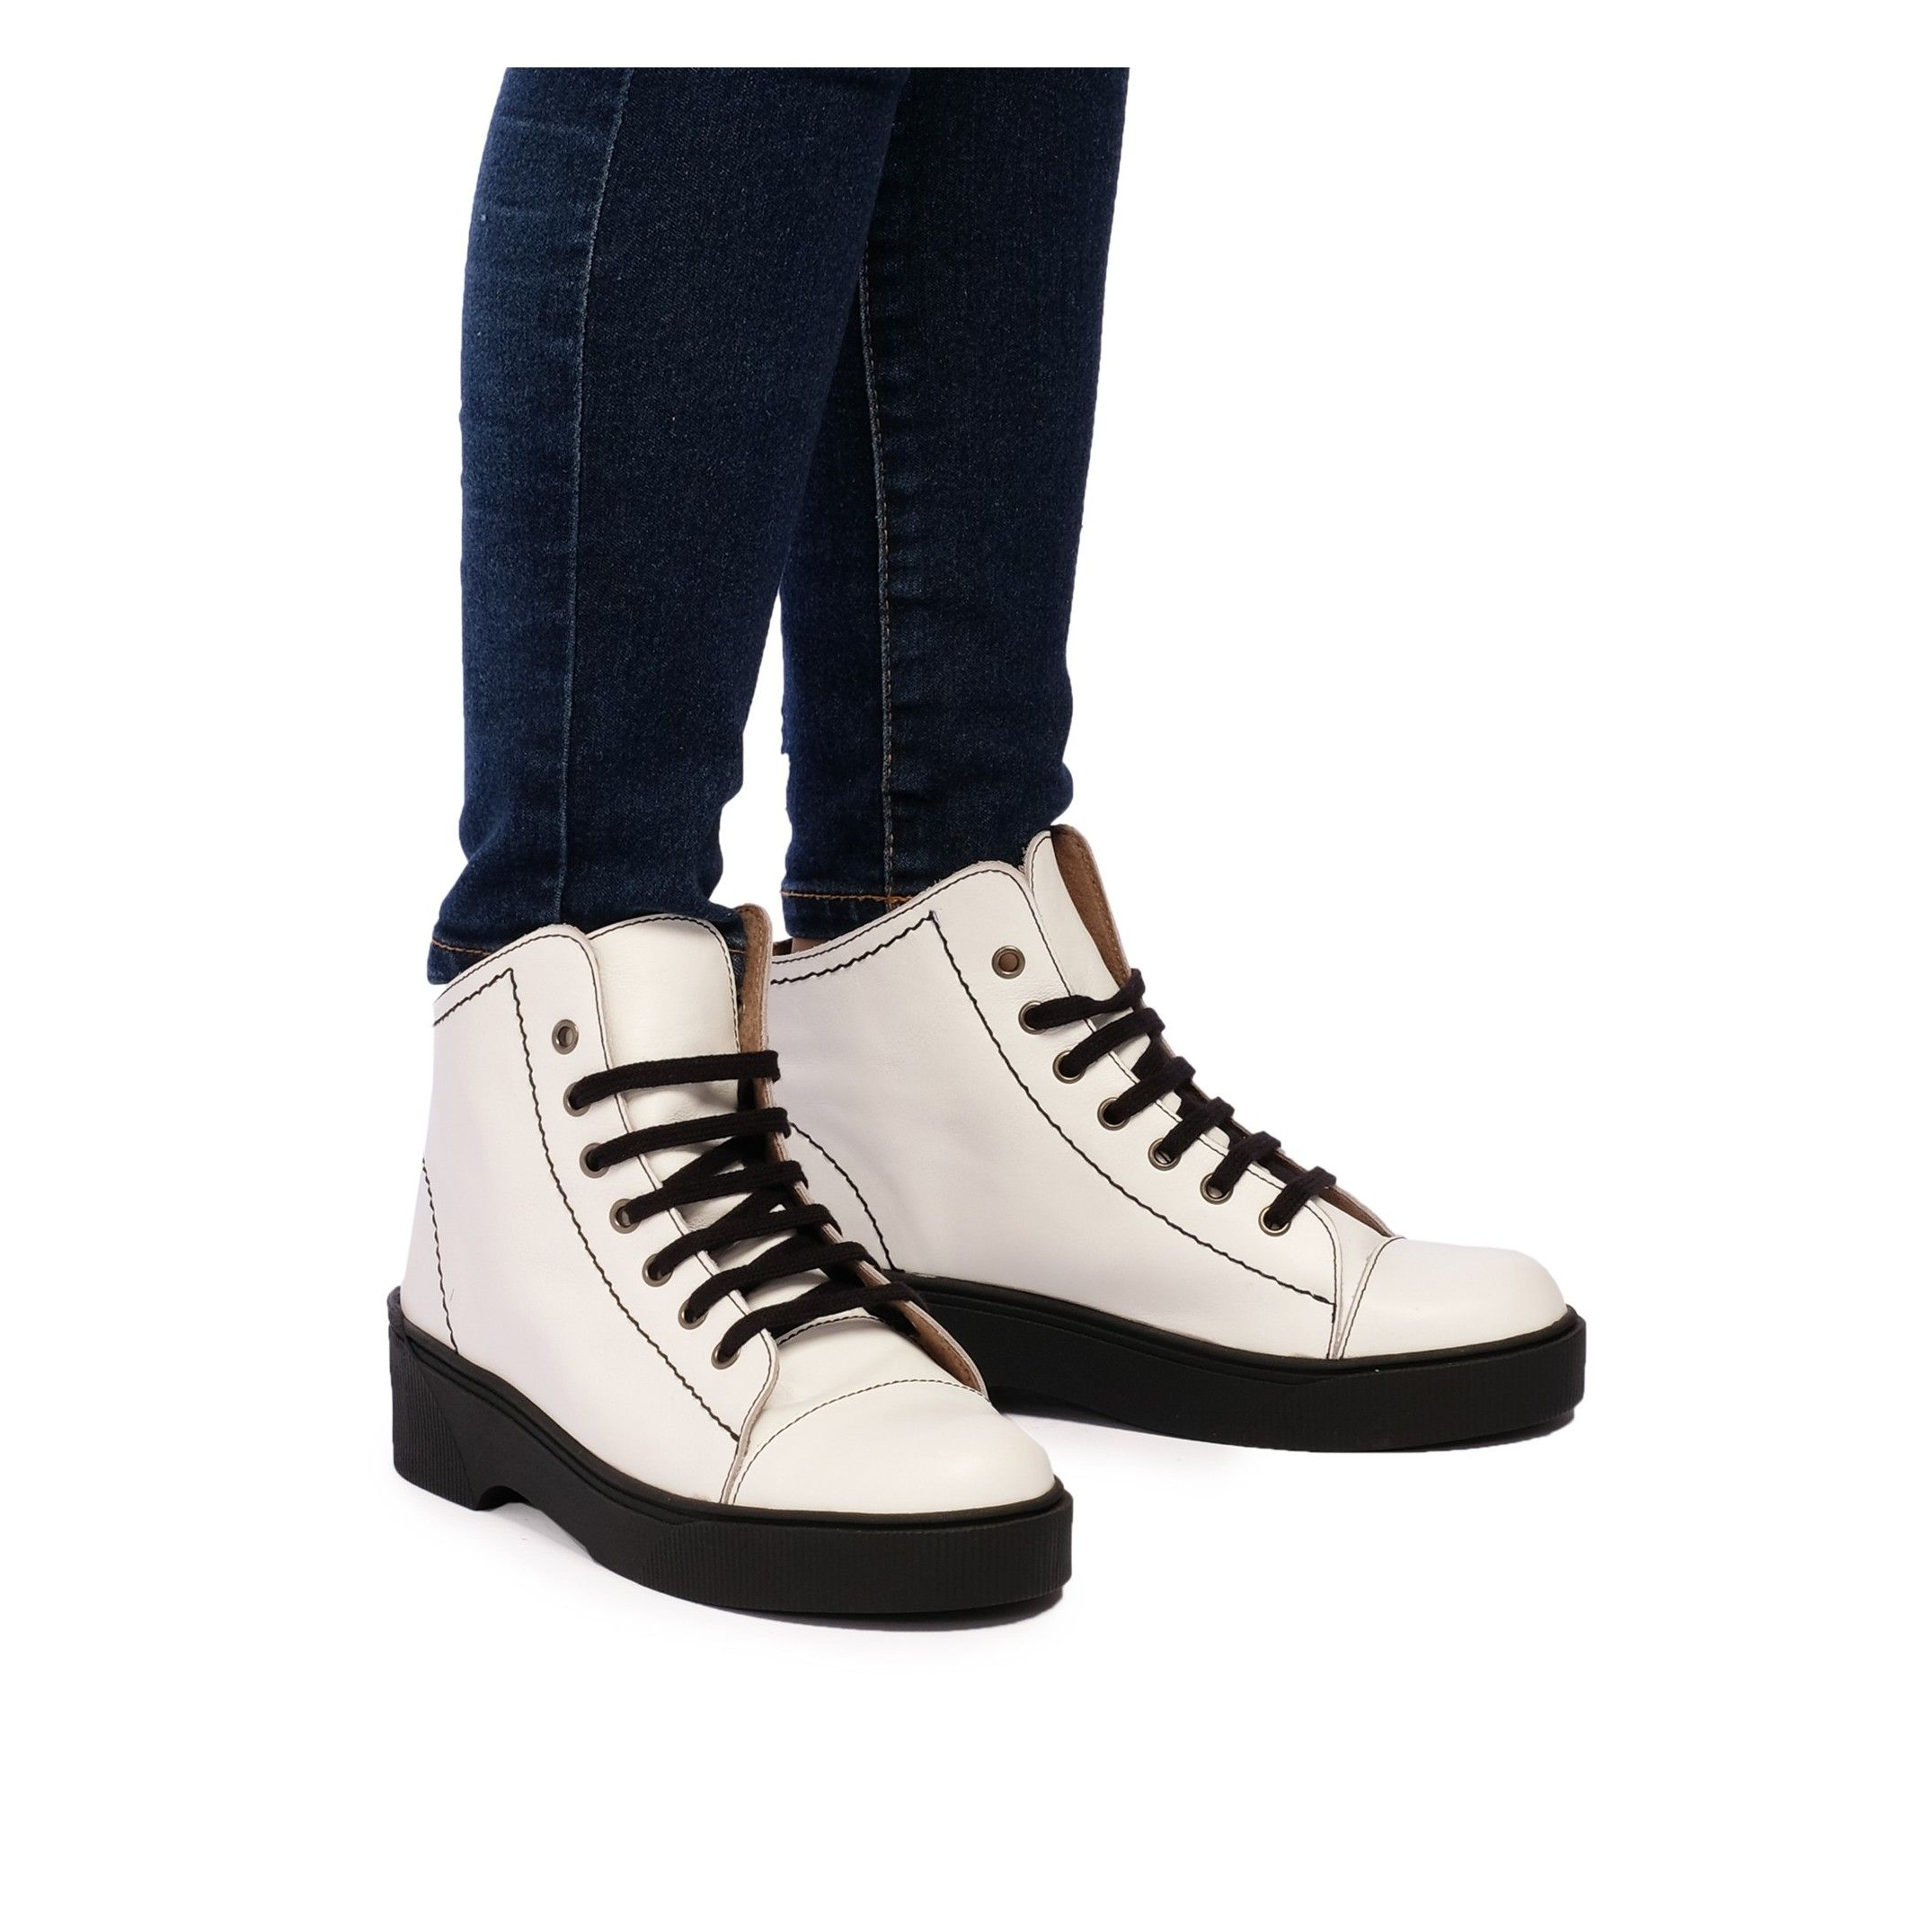 María Barceló Leather Ankle Boots White Woman